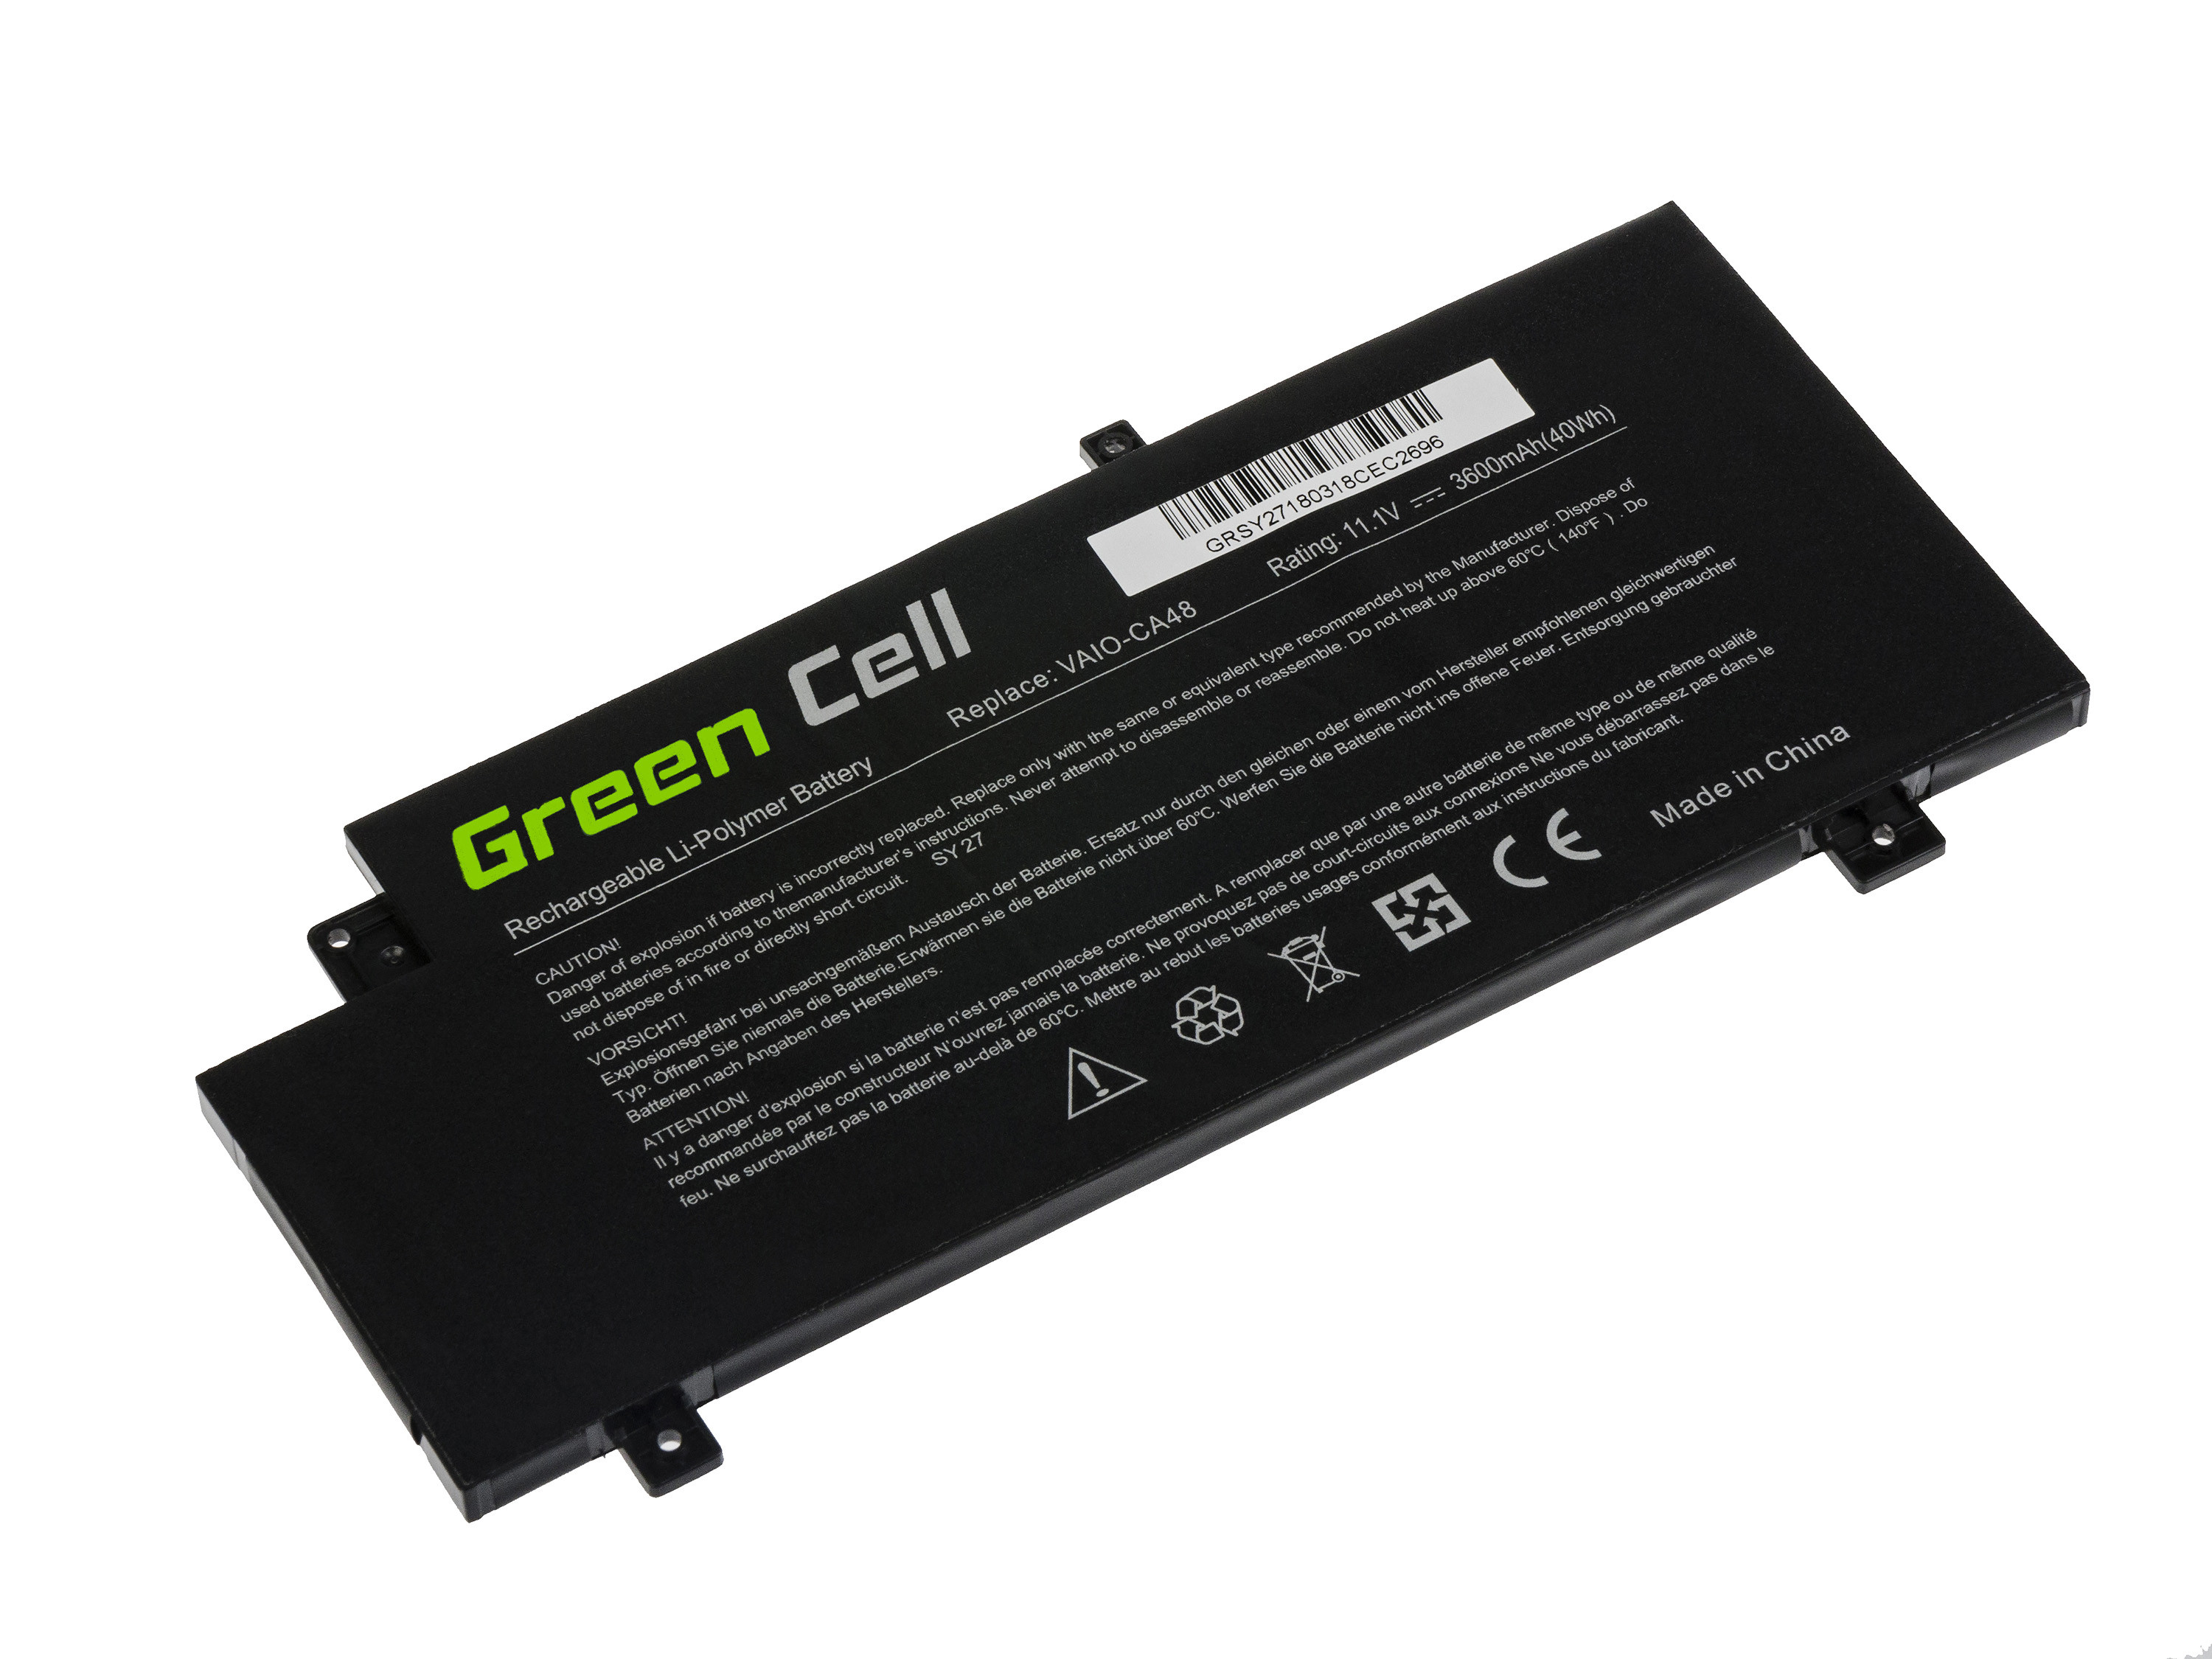 Green Cell Baterie pro Sony Vaio Fit 15 SVF15A / 11,1V 3600mAh